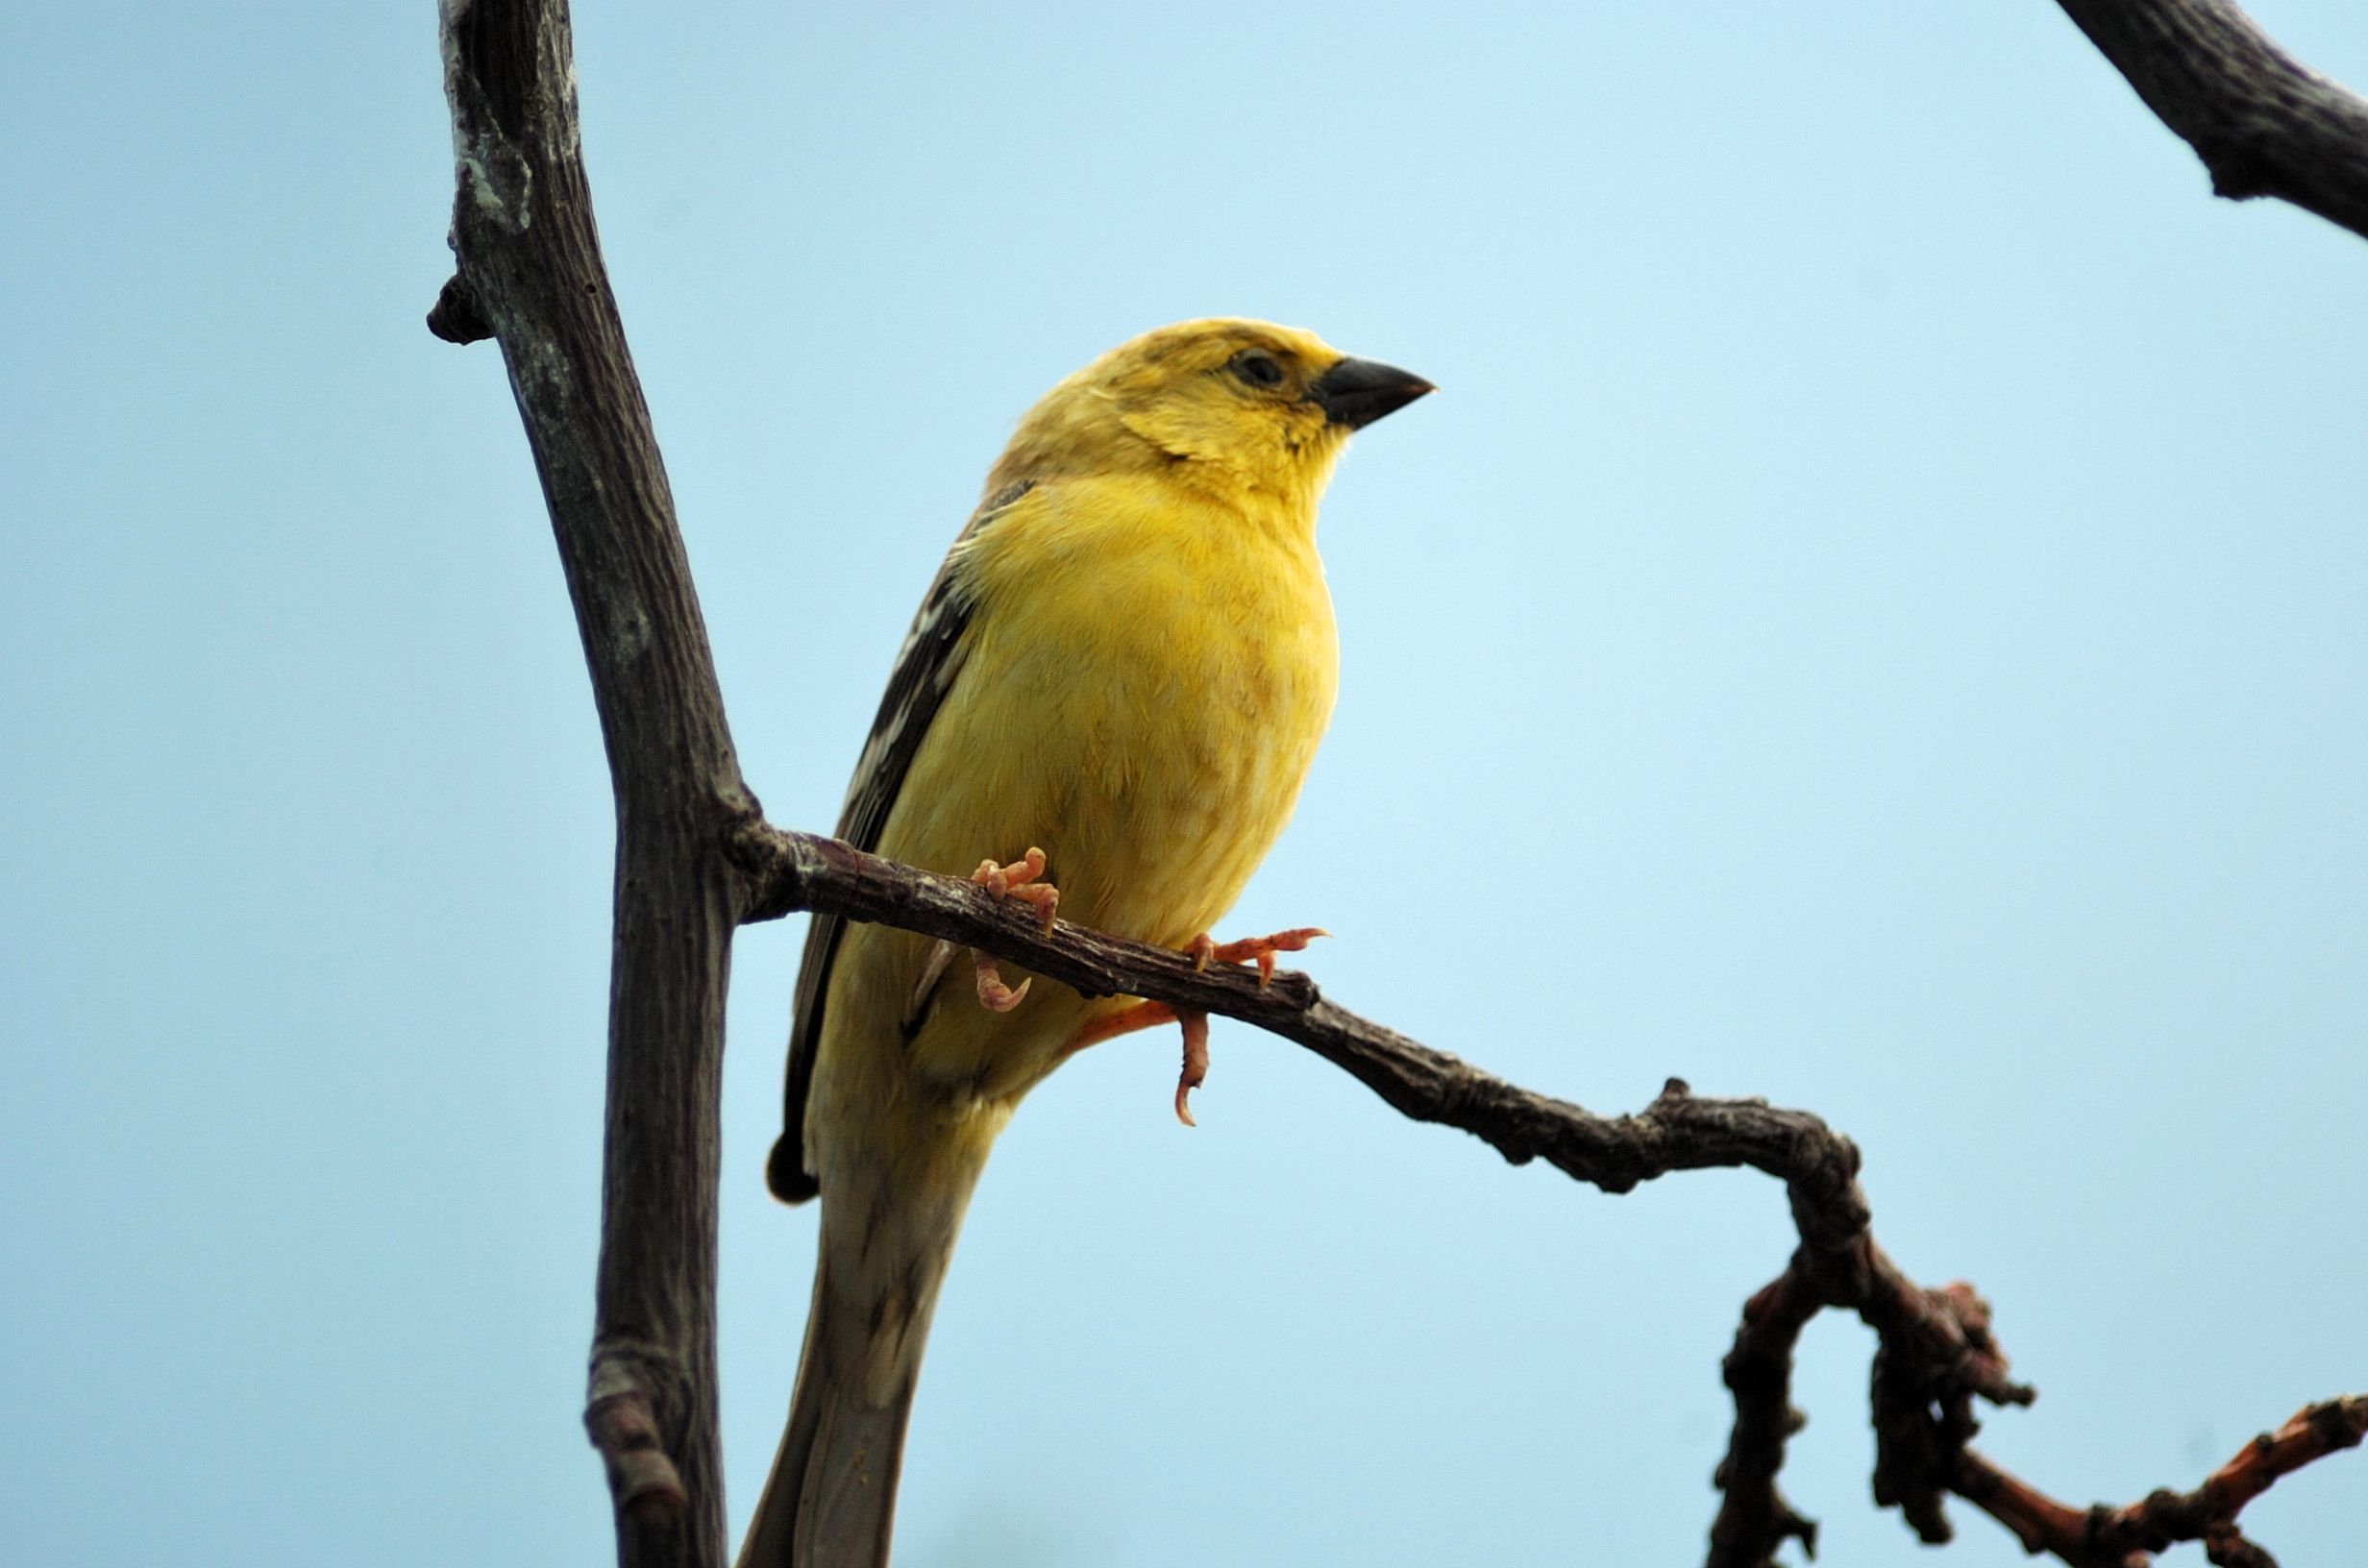 Arabian Golden Sparrow on the branch